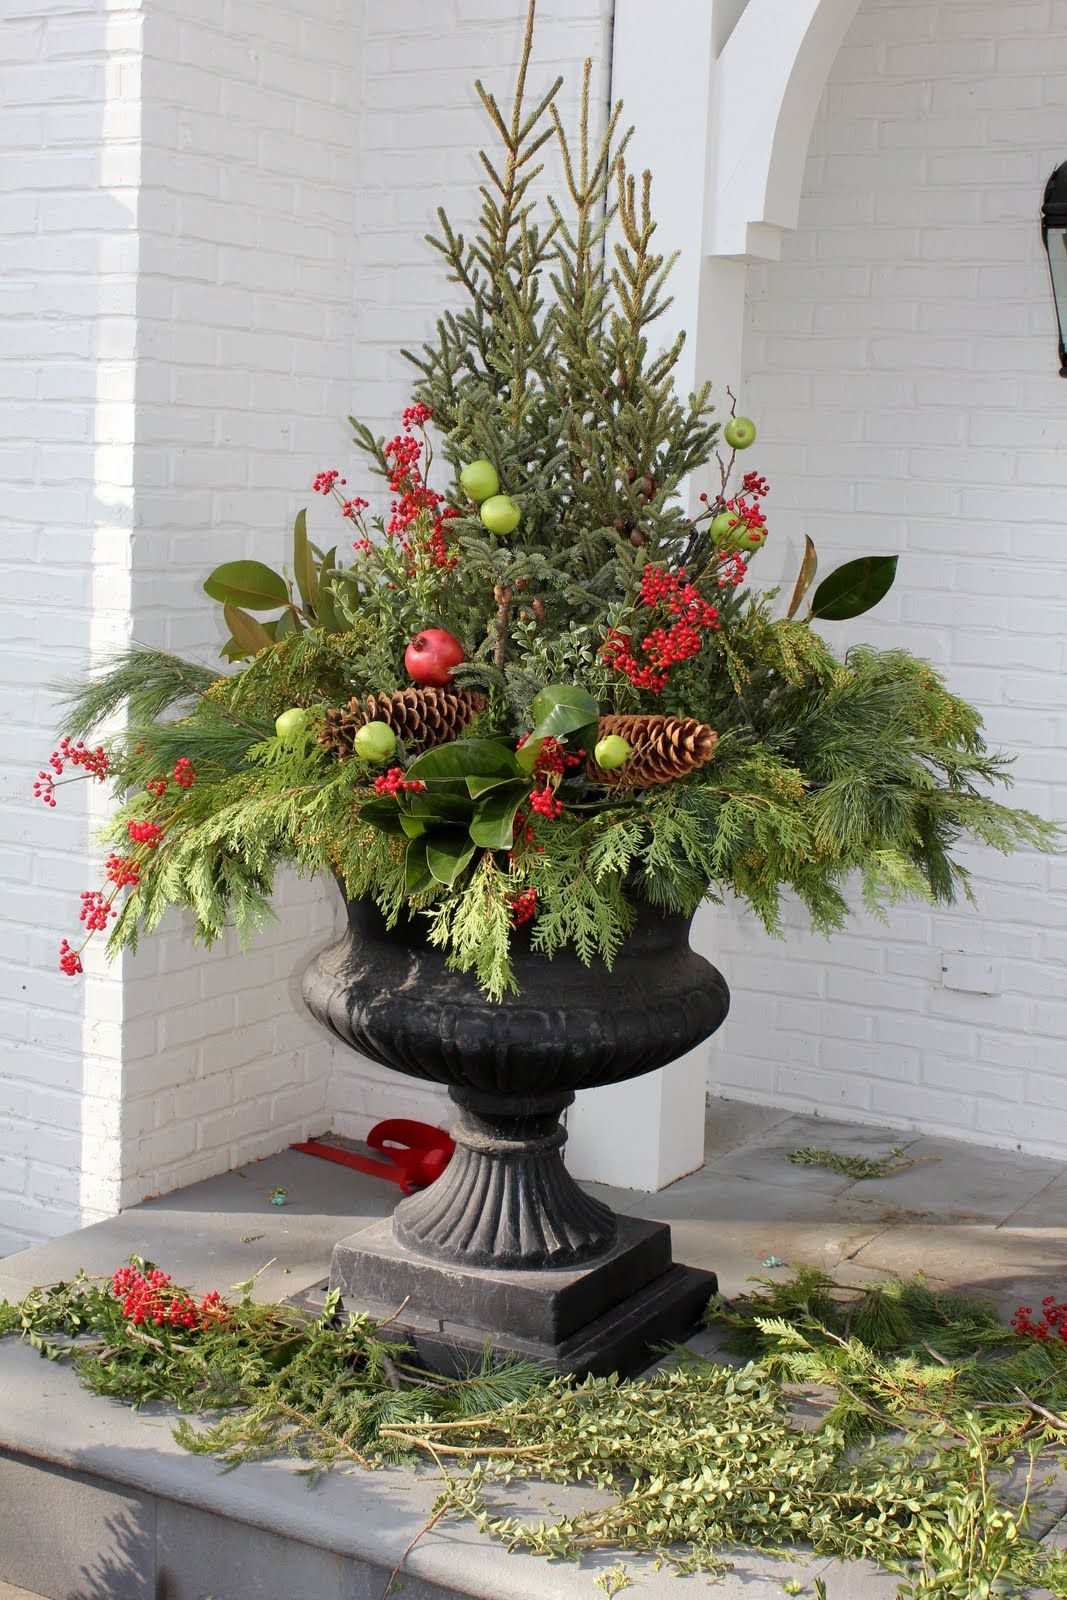 5Th And State Winter Containers Ideas For Diy 400 x 300